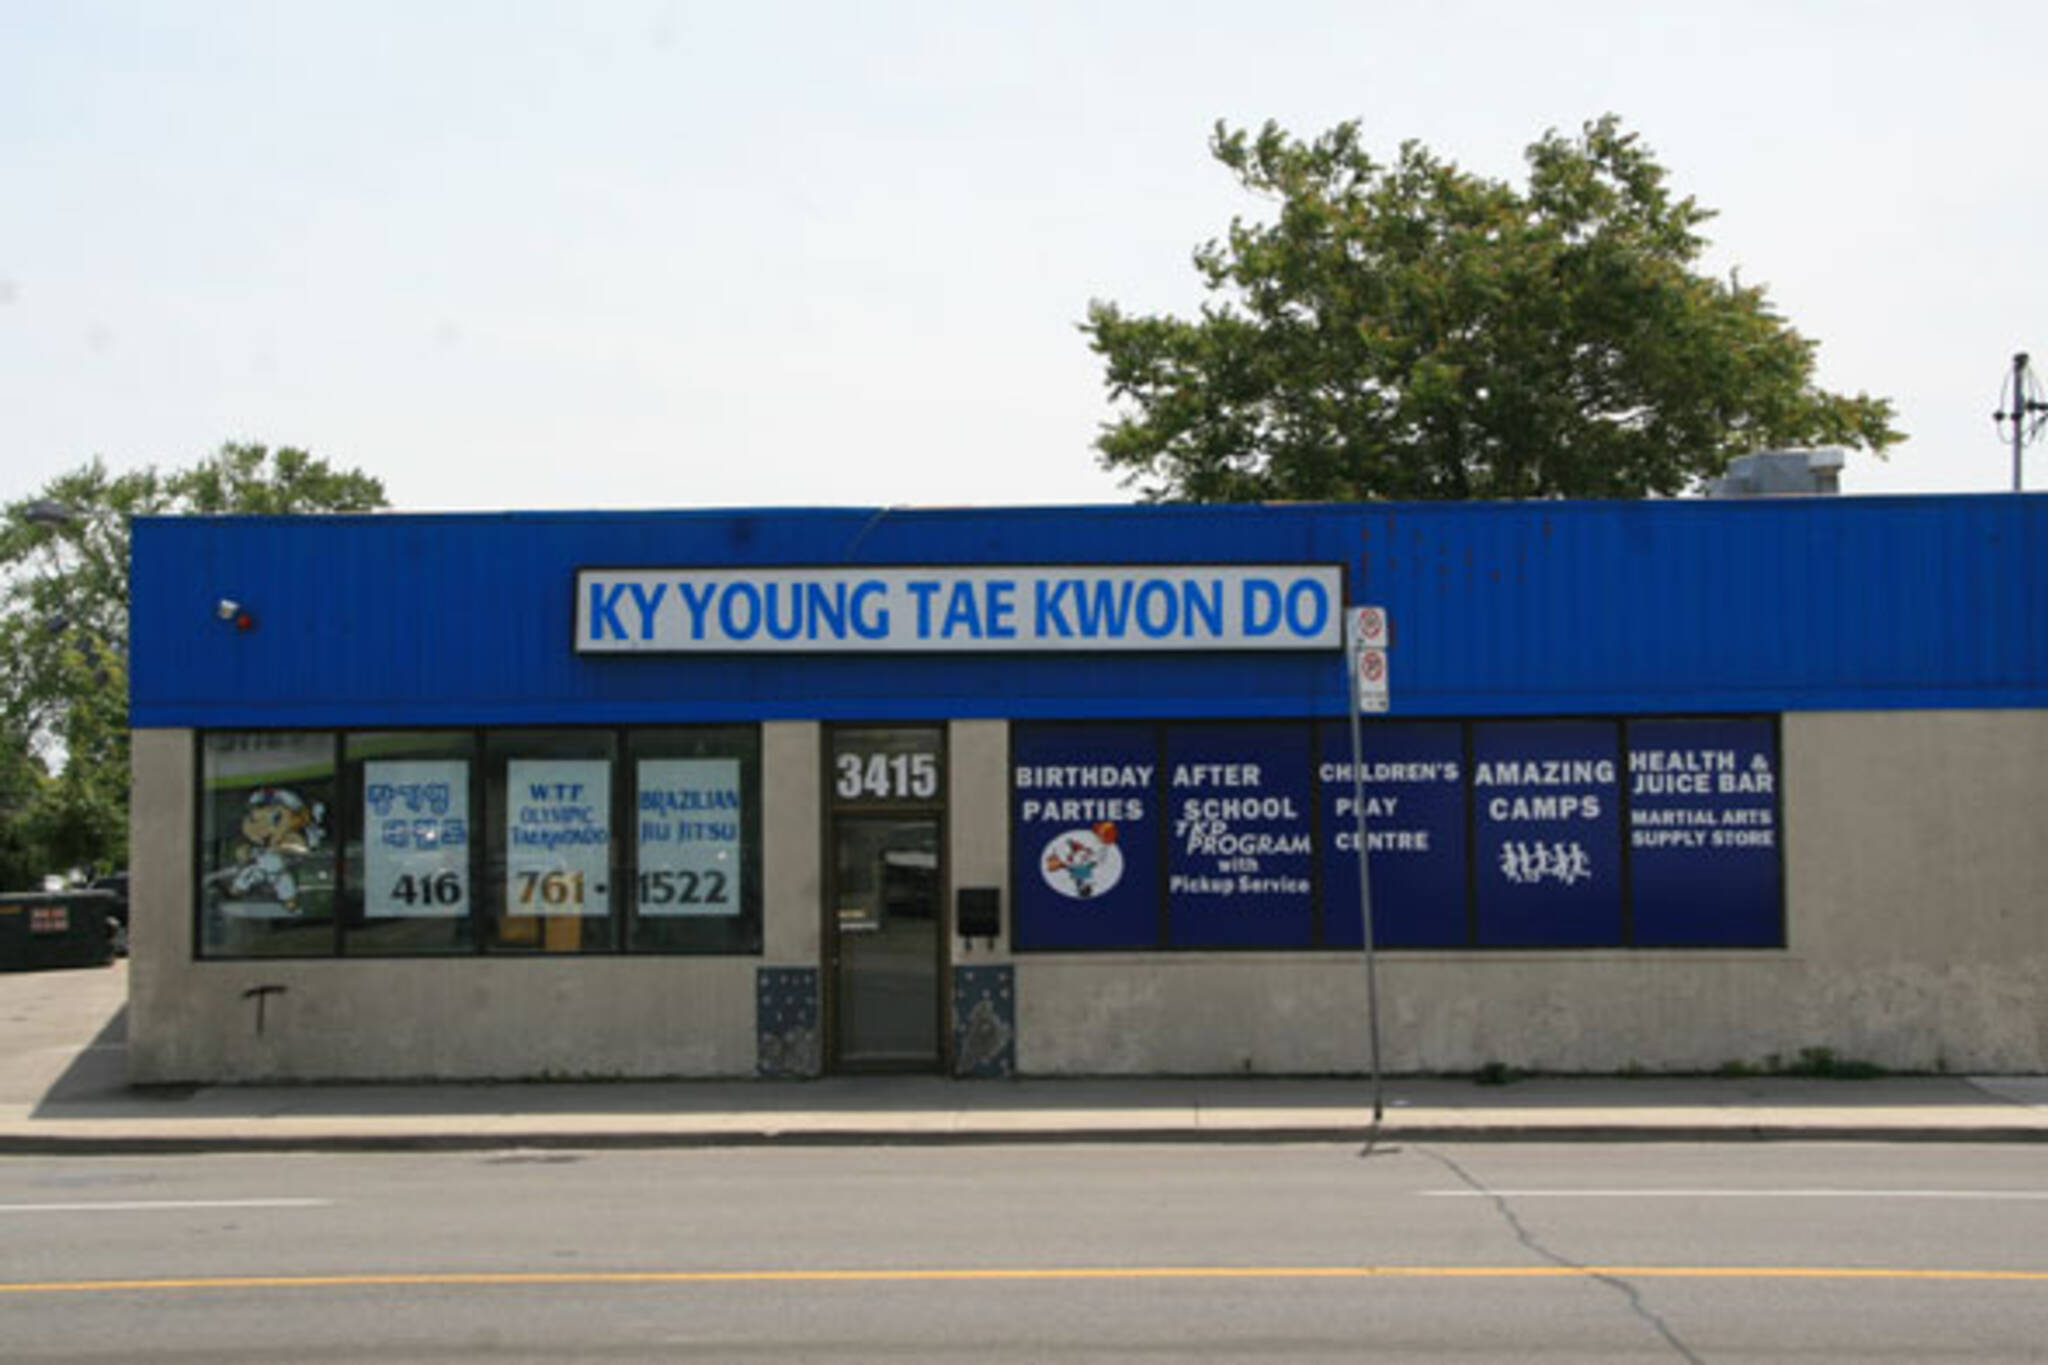 Ky Young Tae Kwon Do